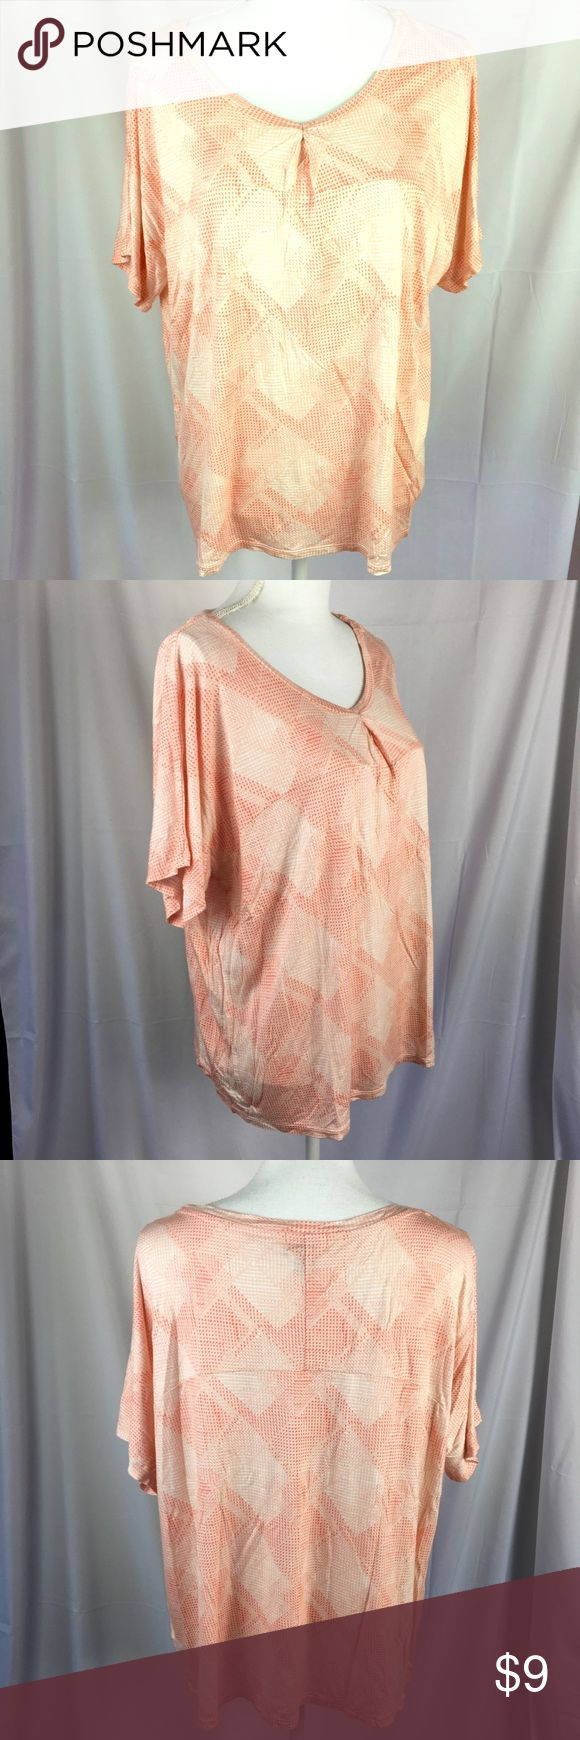 """Old Navy short sleeve top boxy Loose fit size XL Loose fit super soft top in great condition! Geometric orange and light pink shapes. 100% rayon.   Shoulders 25"""" Bust 25"""" Length 24"""" Old Navy Tops Tees - Short Sleeve"""